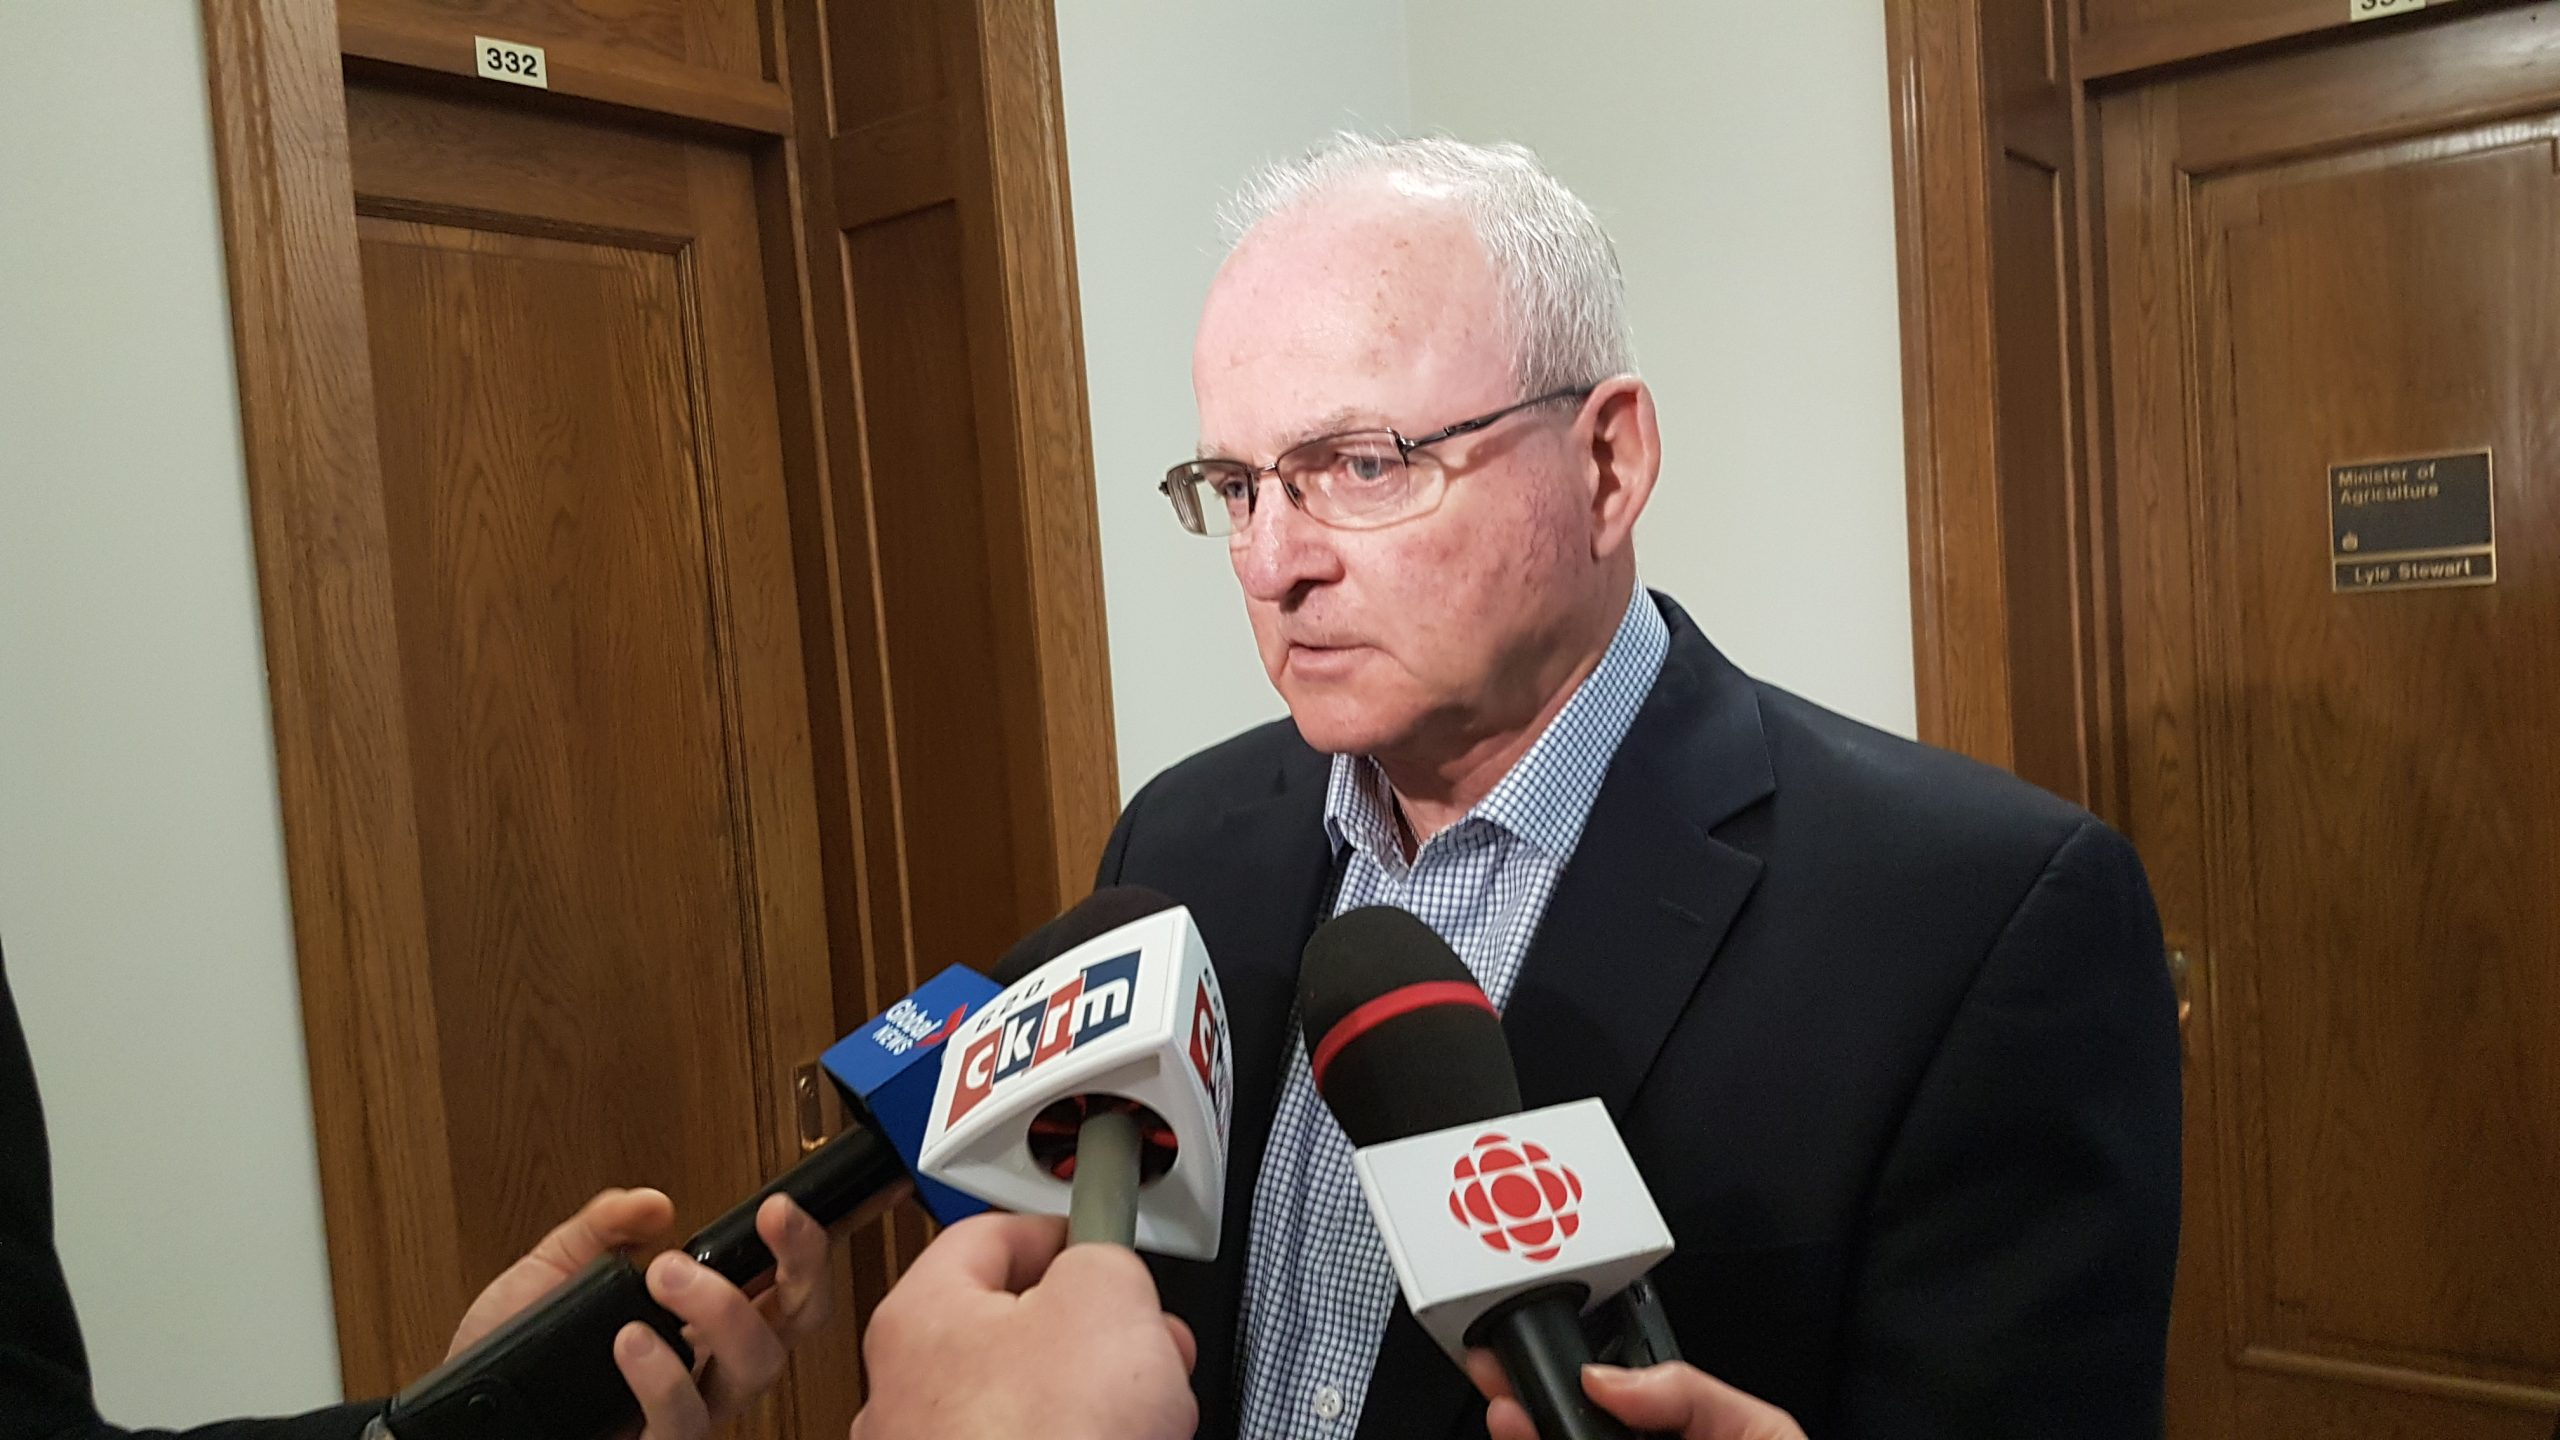 Lyle Stewart stepping down as minister of Agriculture